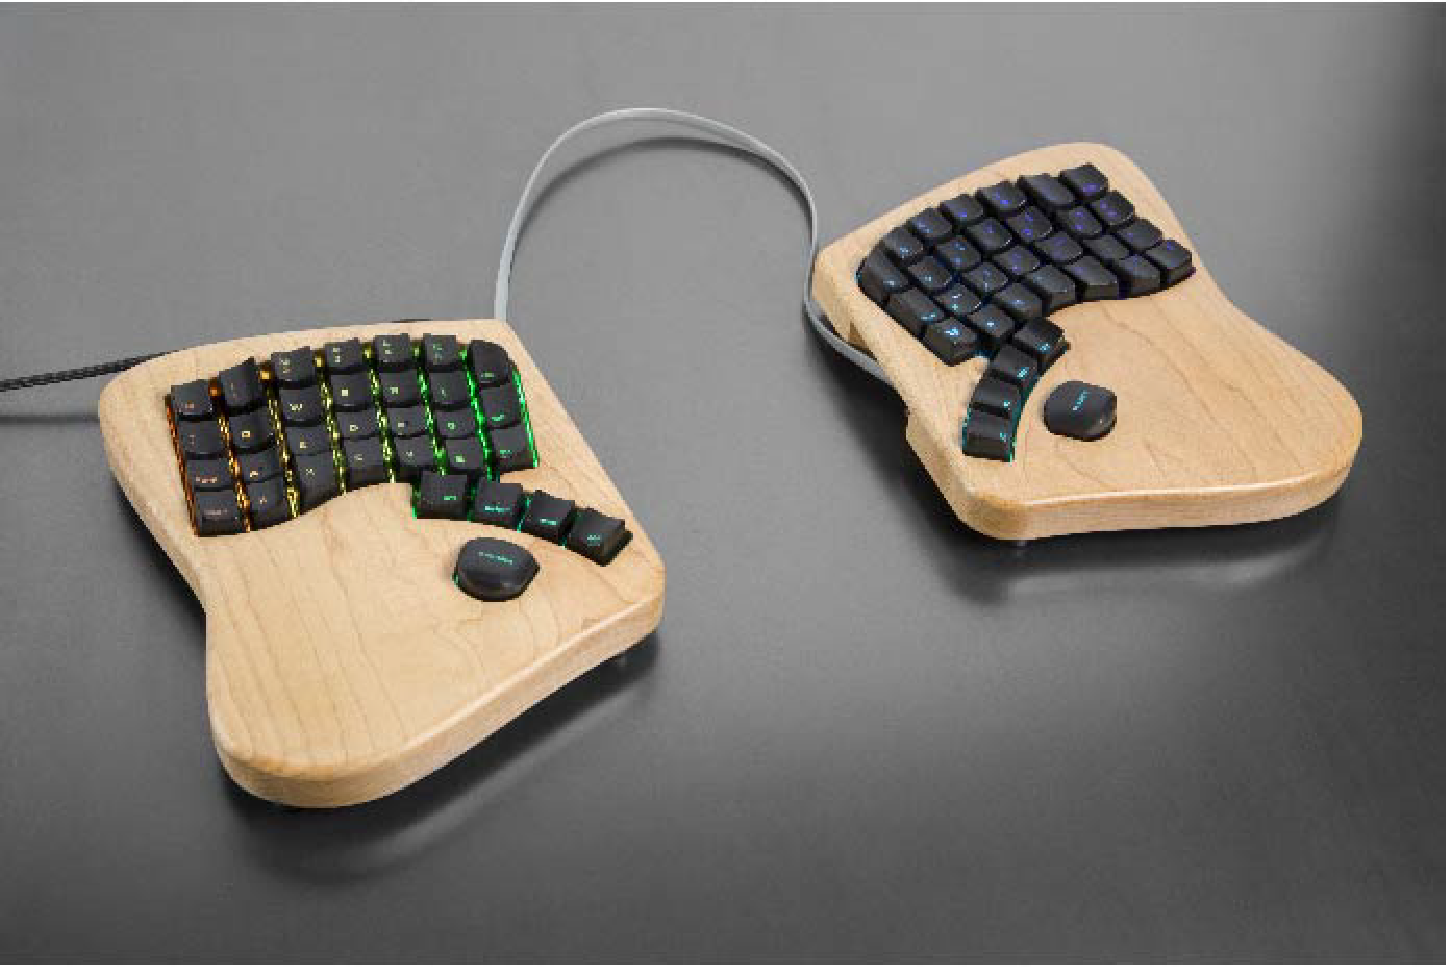 keyboardio.how-easyship-helped.img-alt-keyboardio-separated